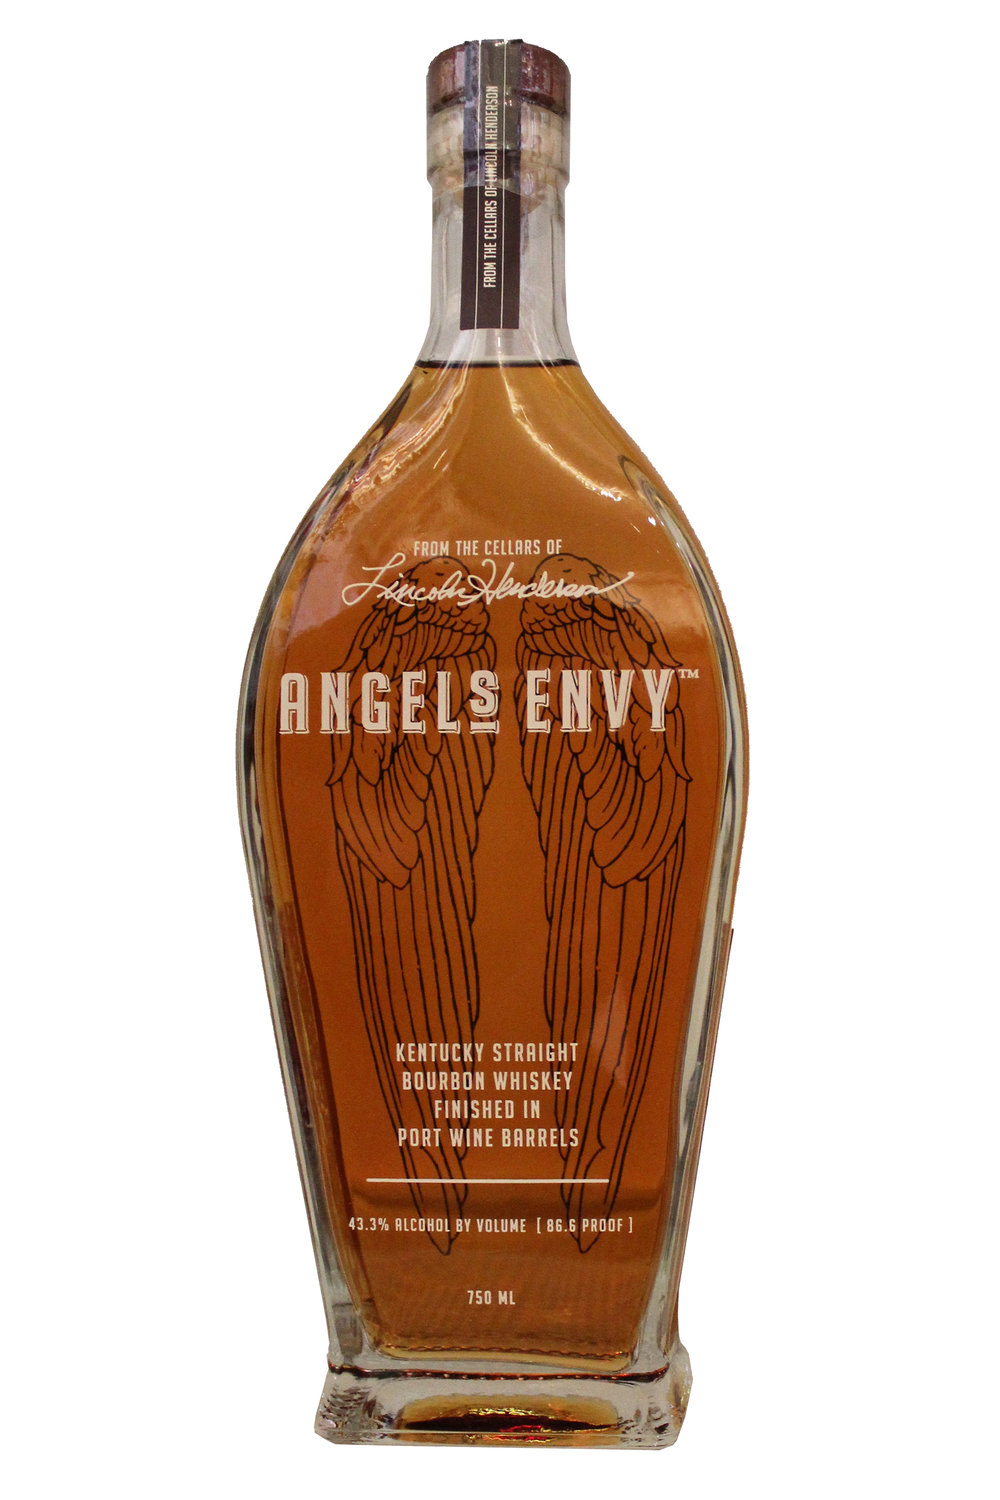 Port Wine Aged Bourbon Angels Envy, Kentucky